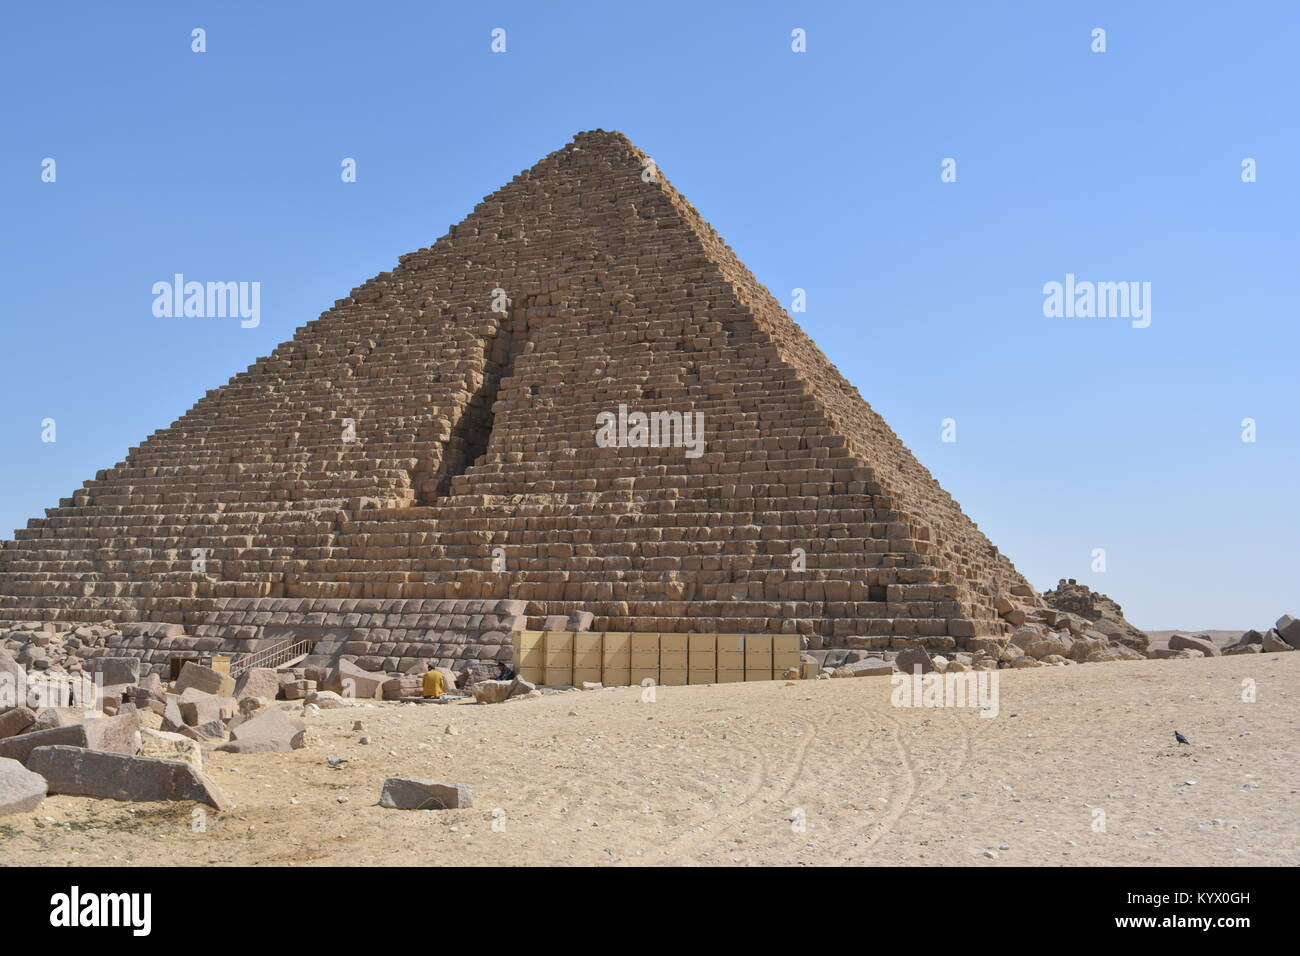 Pyramid of Cheops - Stock Image